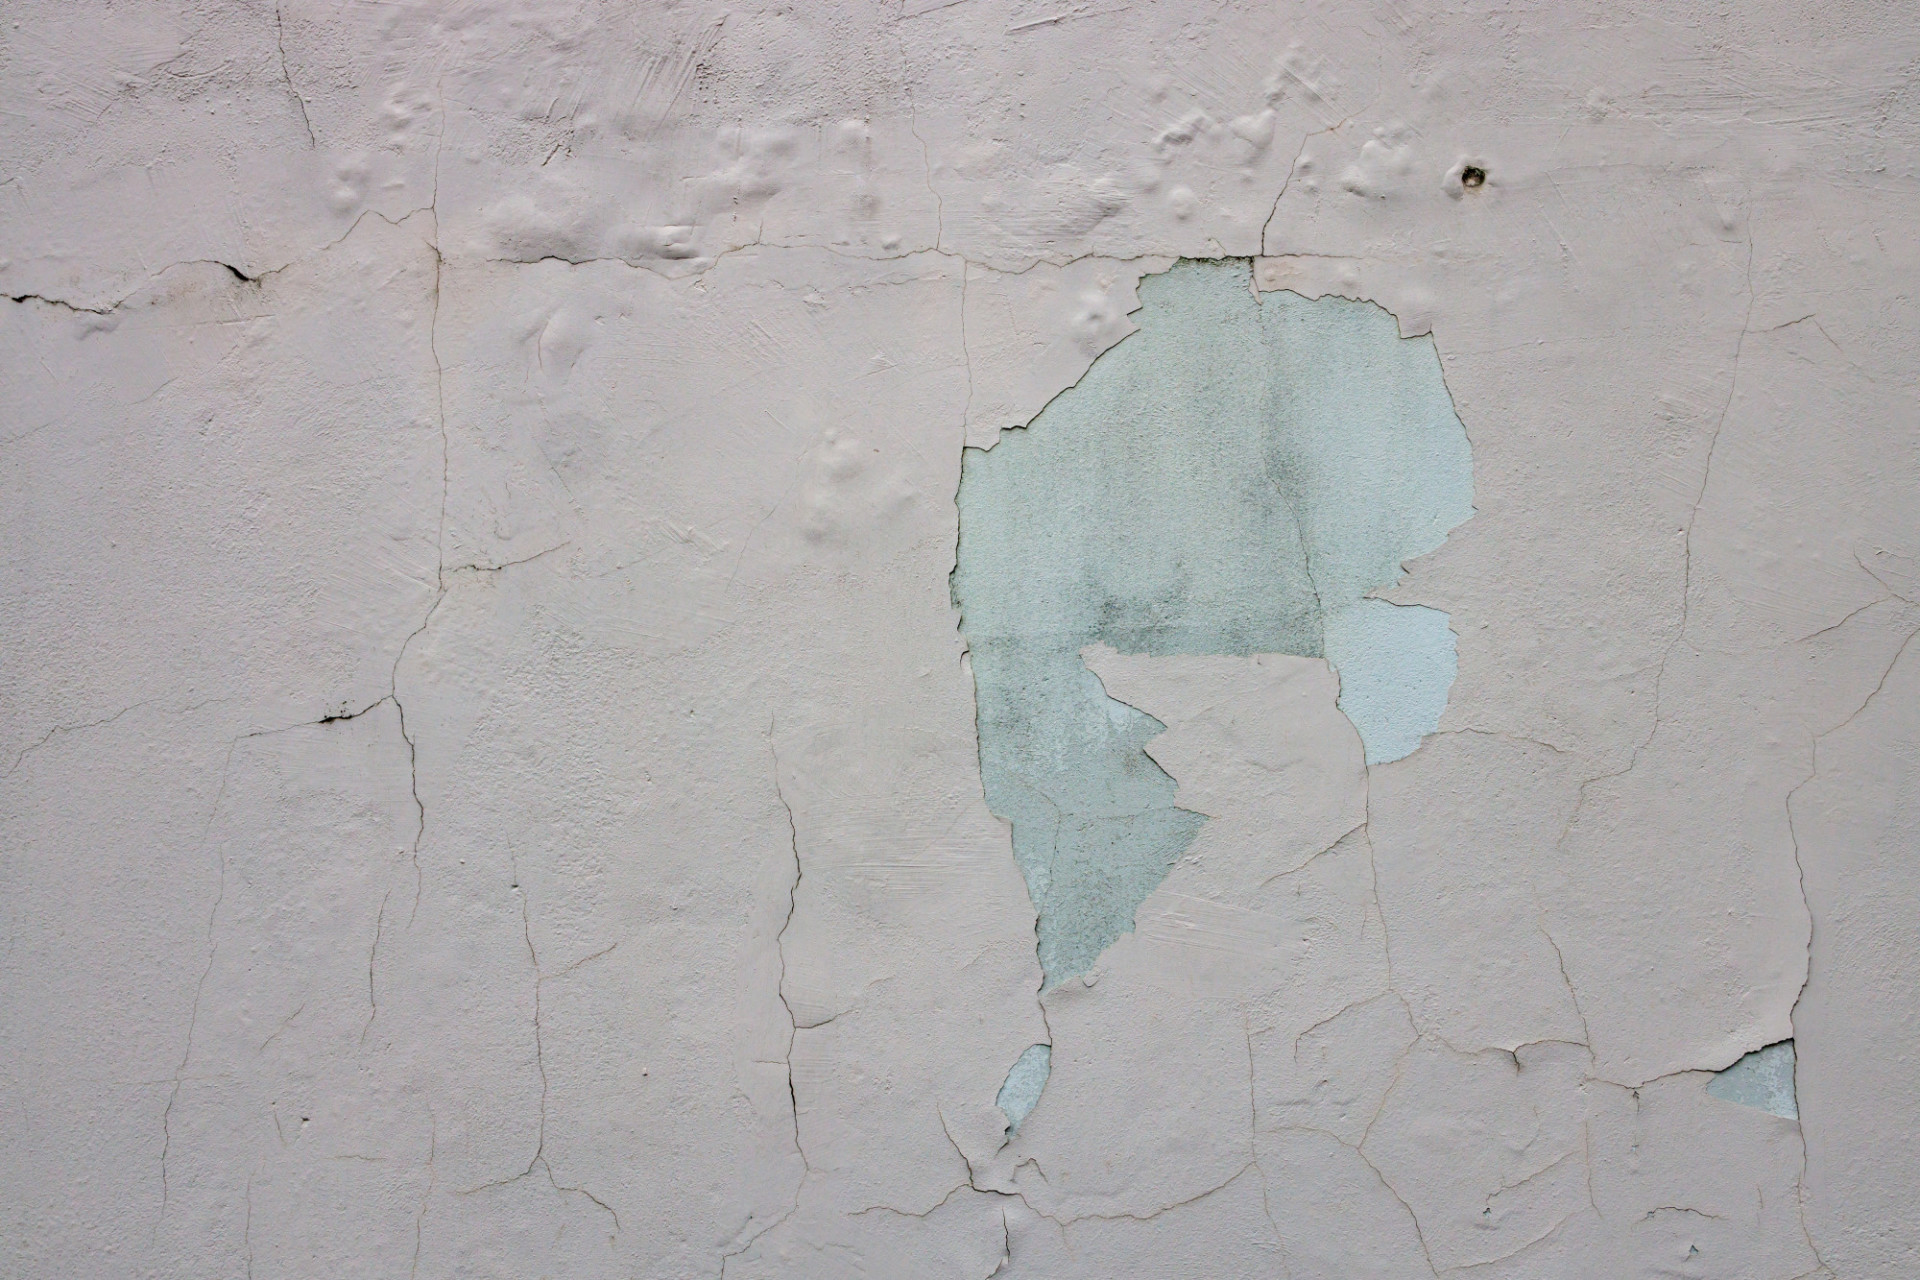 White exterior wall texture with cracked plastering